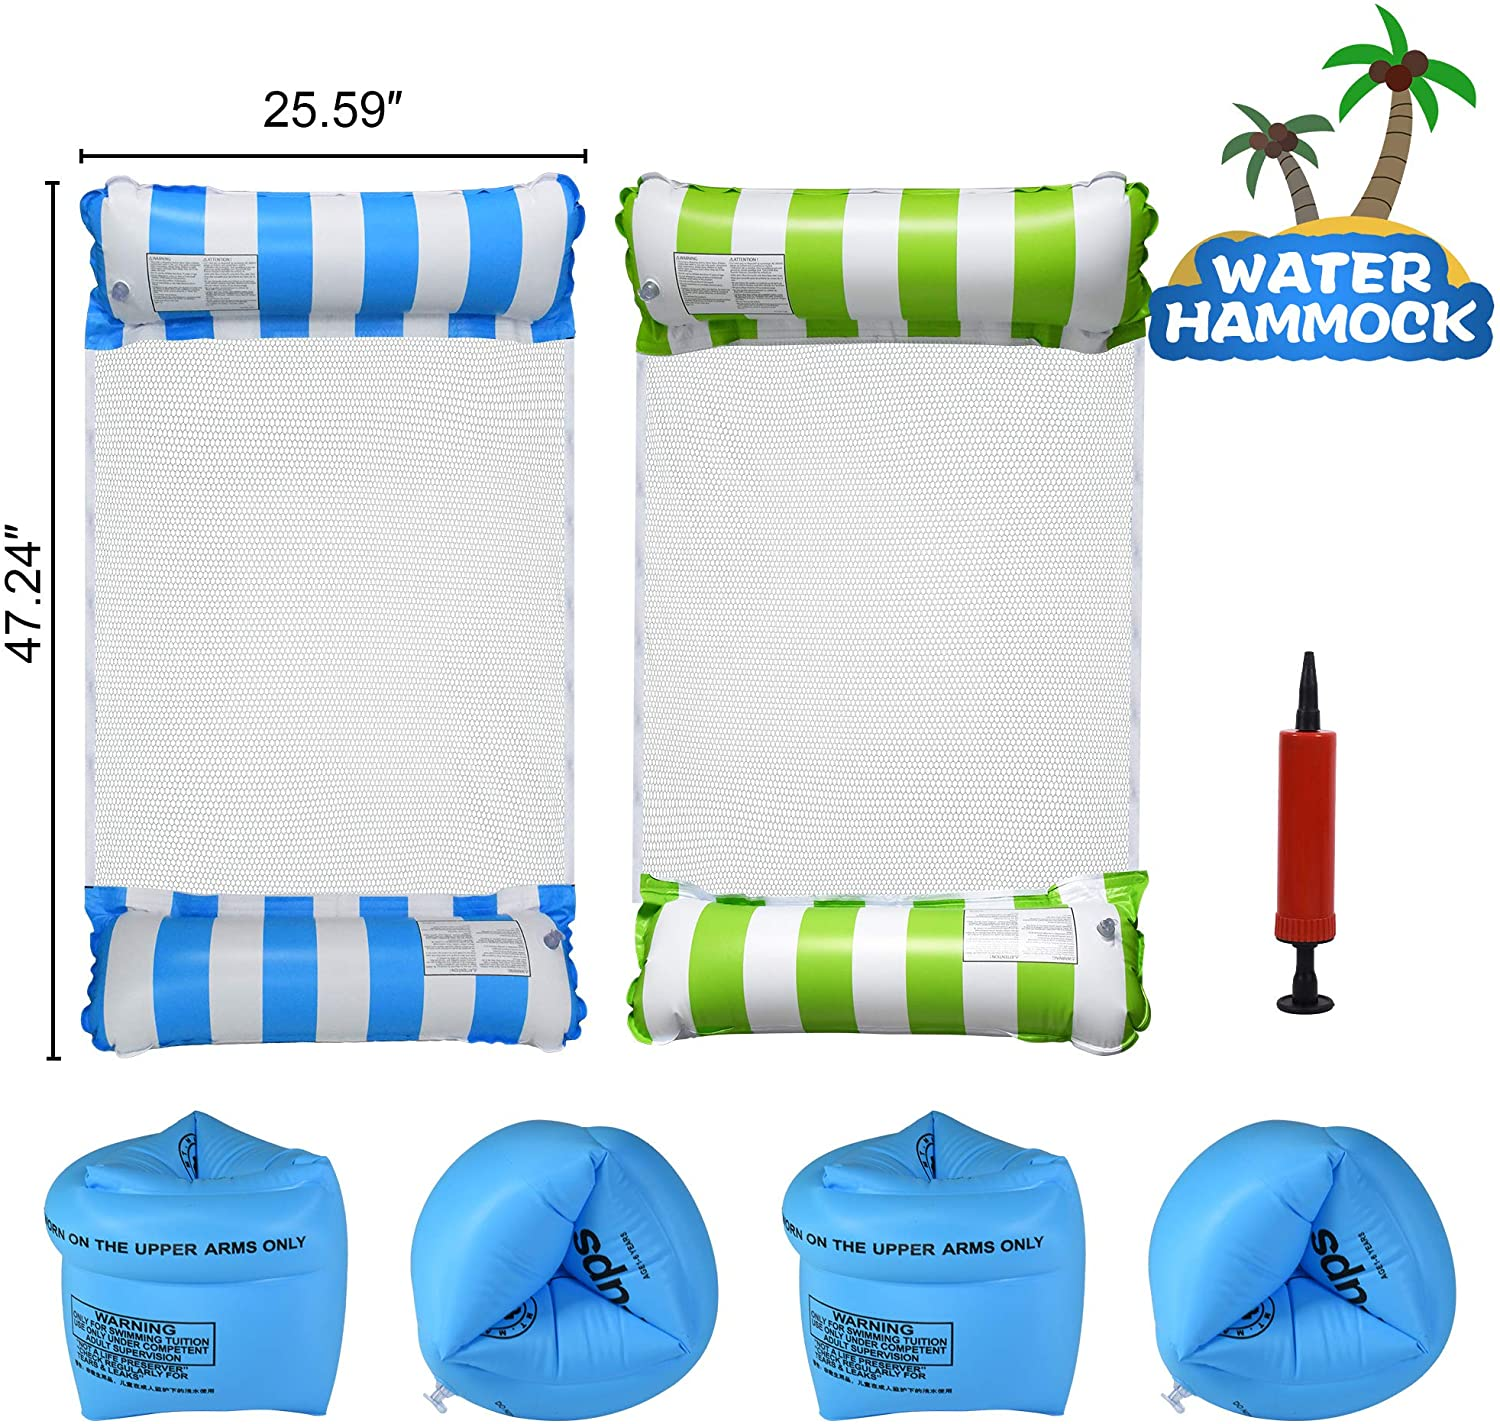 4 Pcs Inflatable Pool Float for $14.98 Shipped! (Reg.Price $29.97)